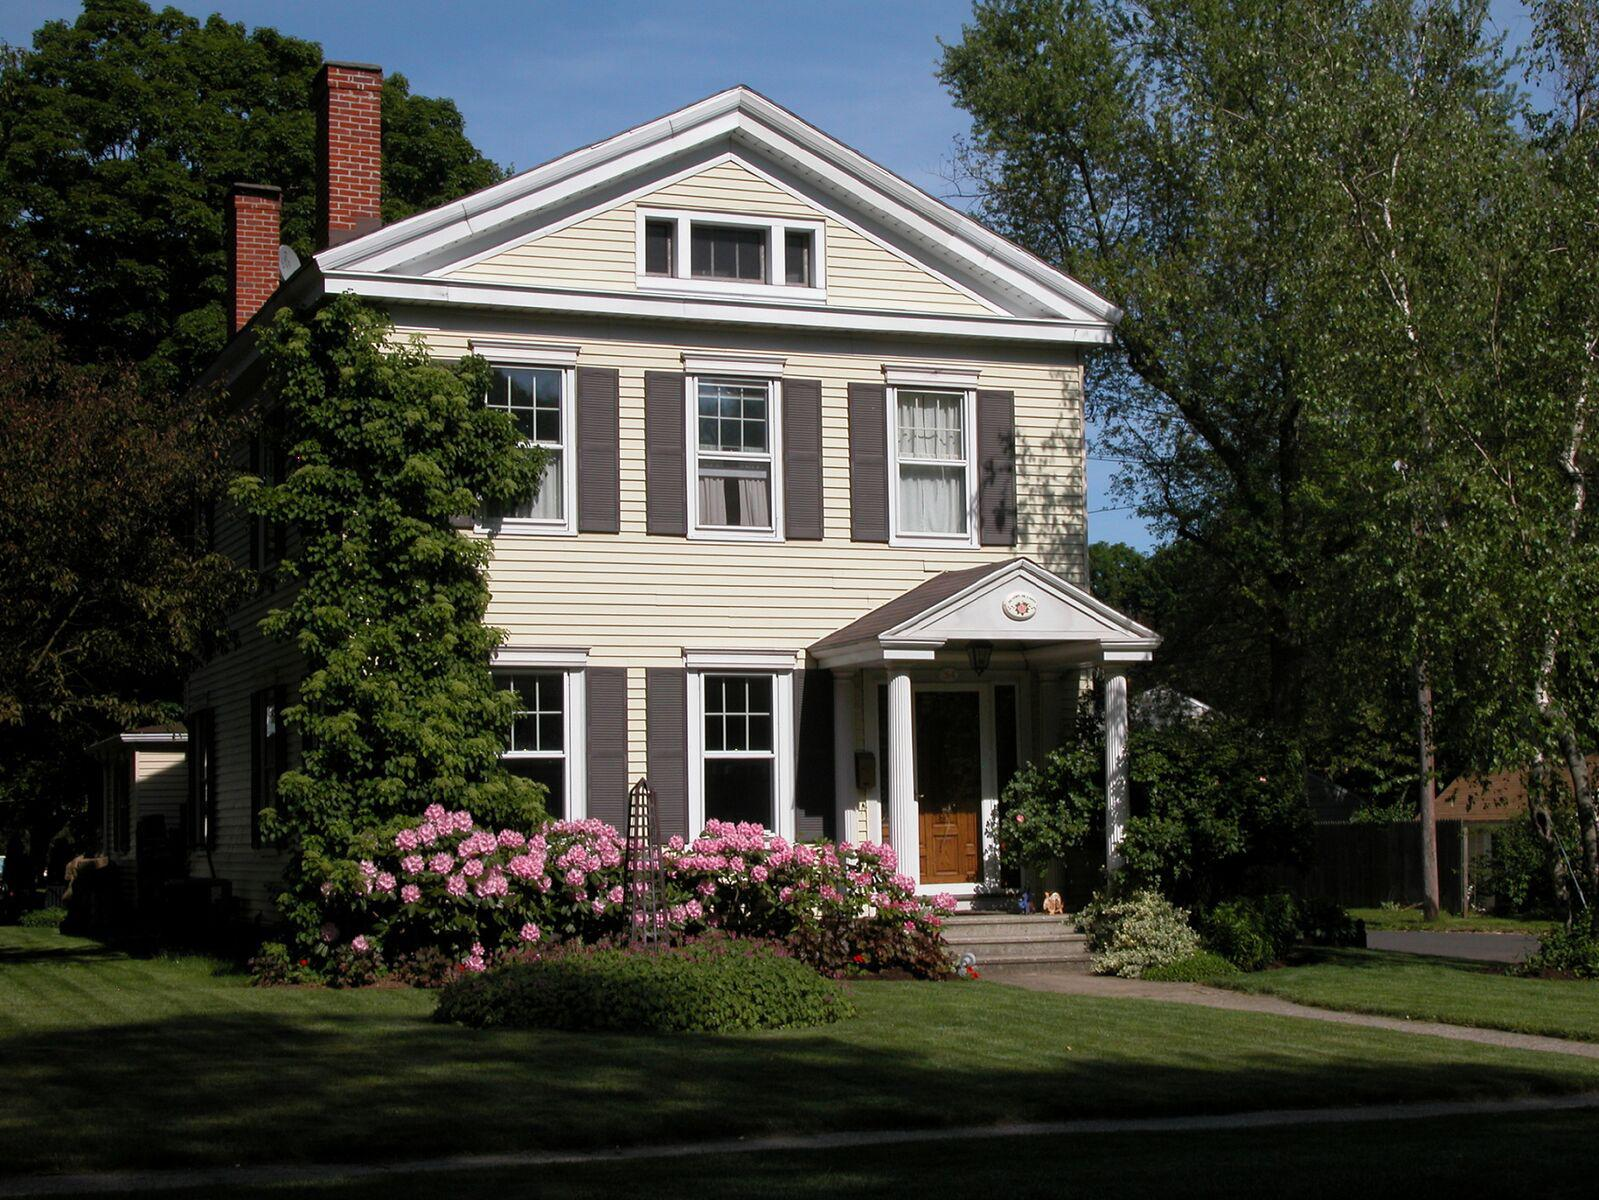 Remarkable, very Milford builders merchant was specially